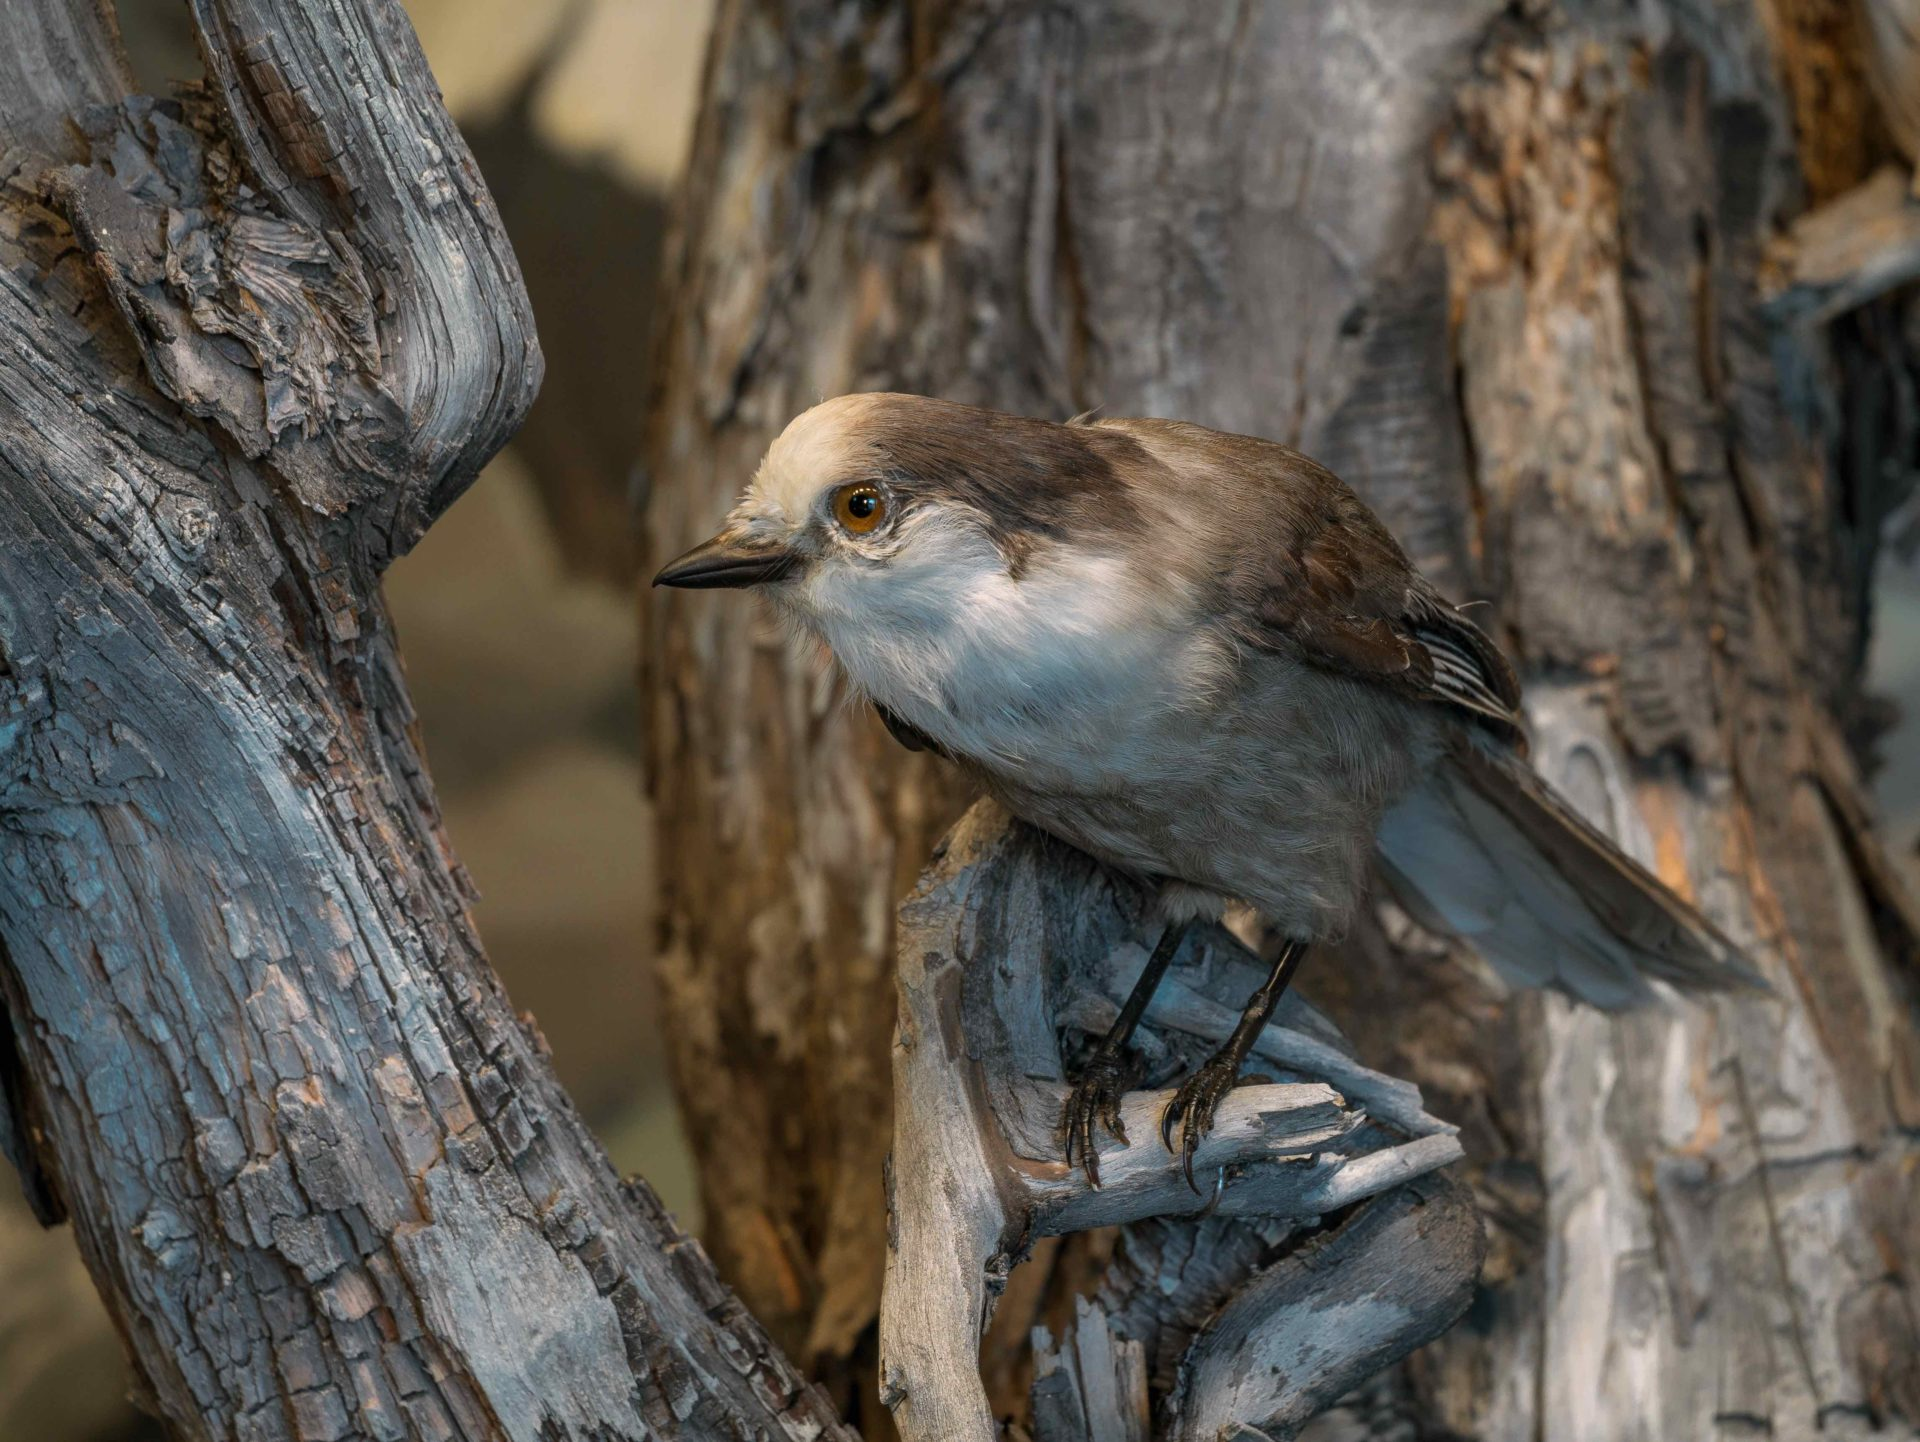 Canada jay, small gray and white bird in Moose diorama